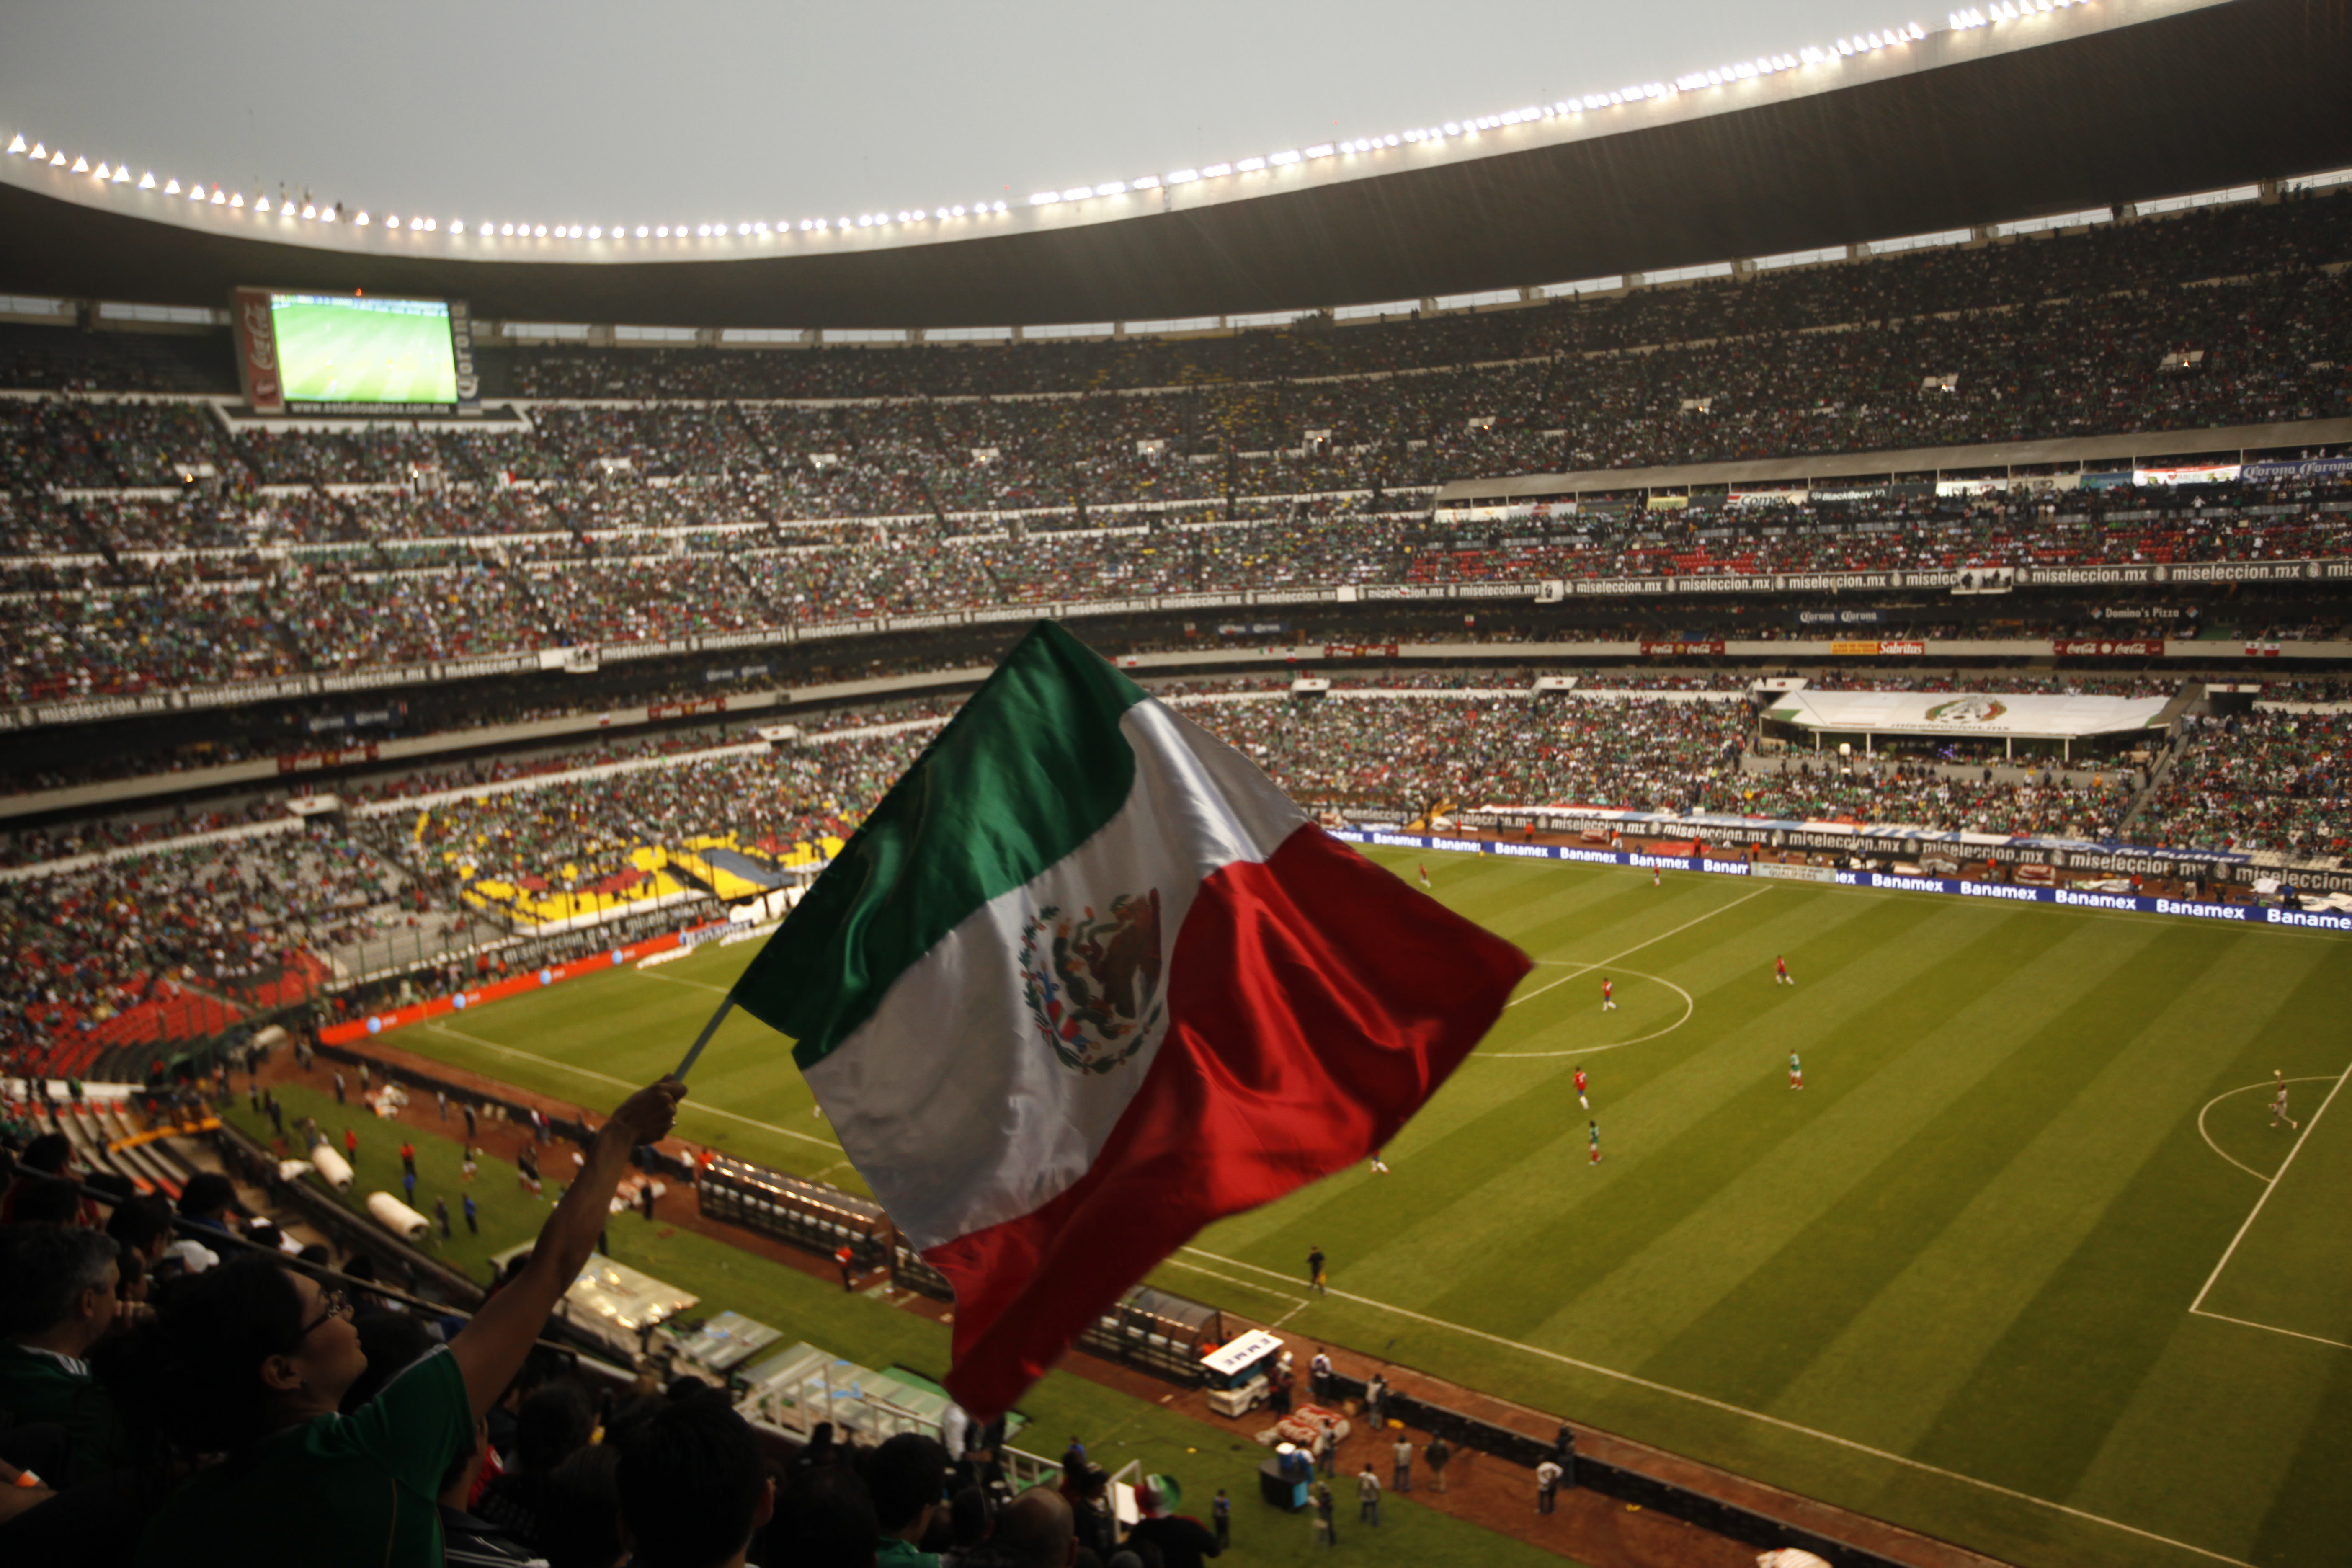 Chargers vs Chiefs in Mexico City